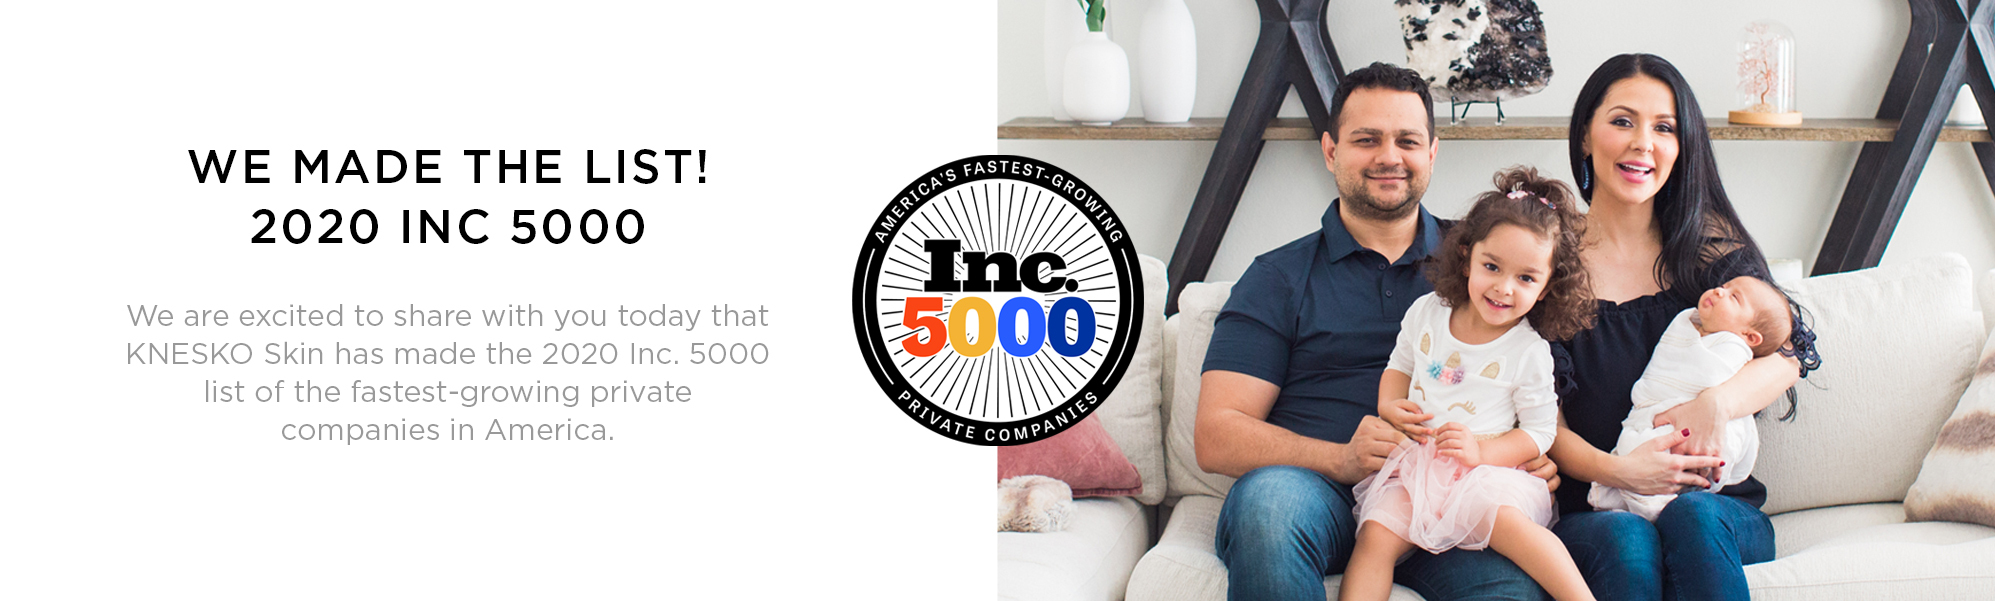 Knesko Made It Into the Inc 5000